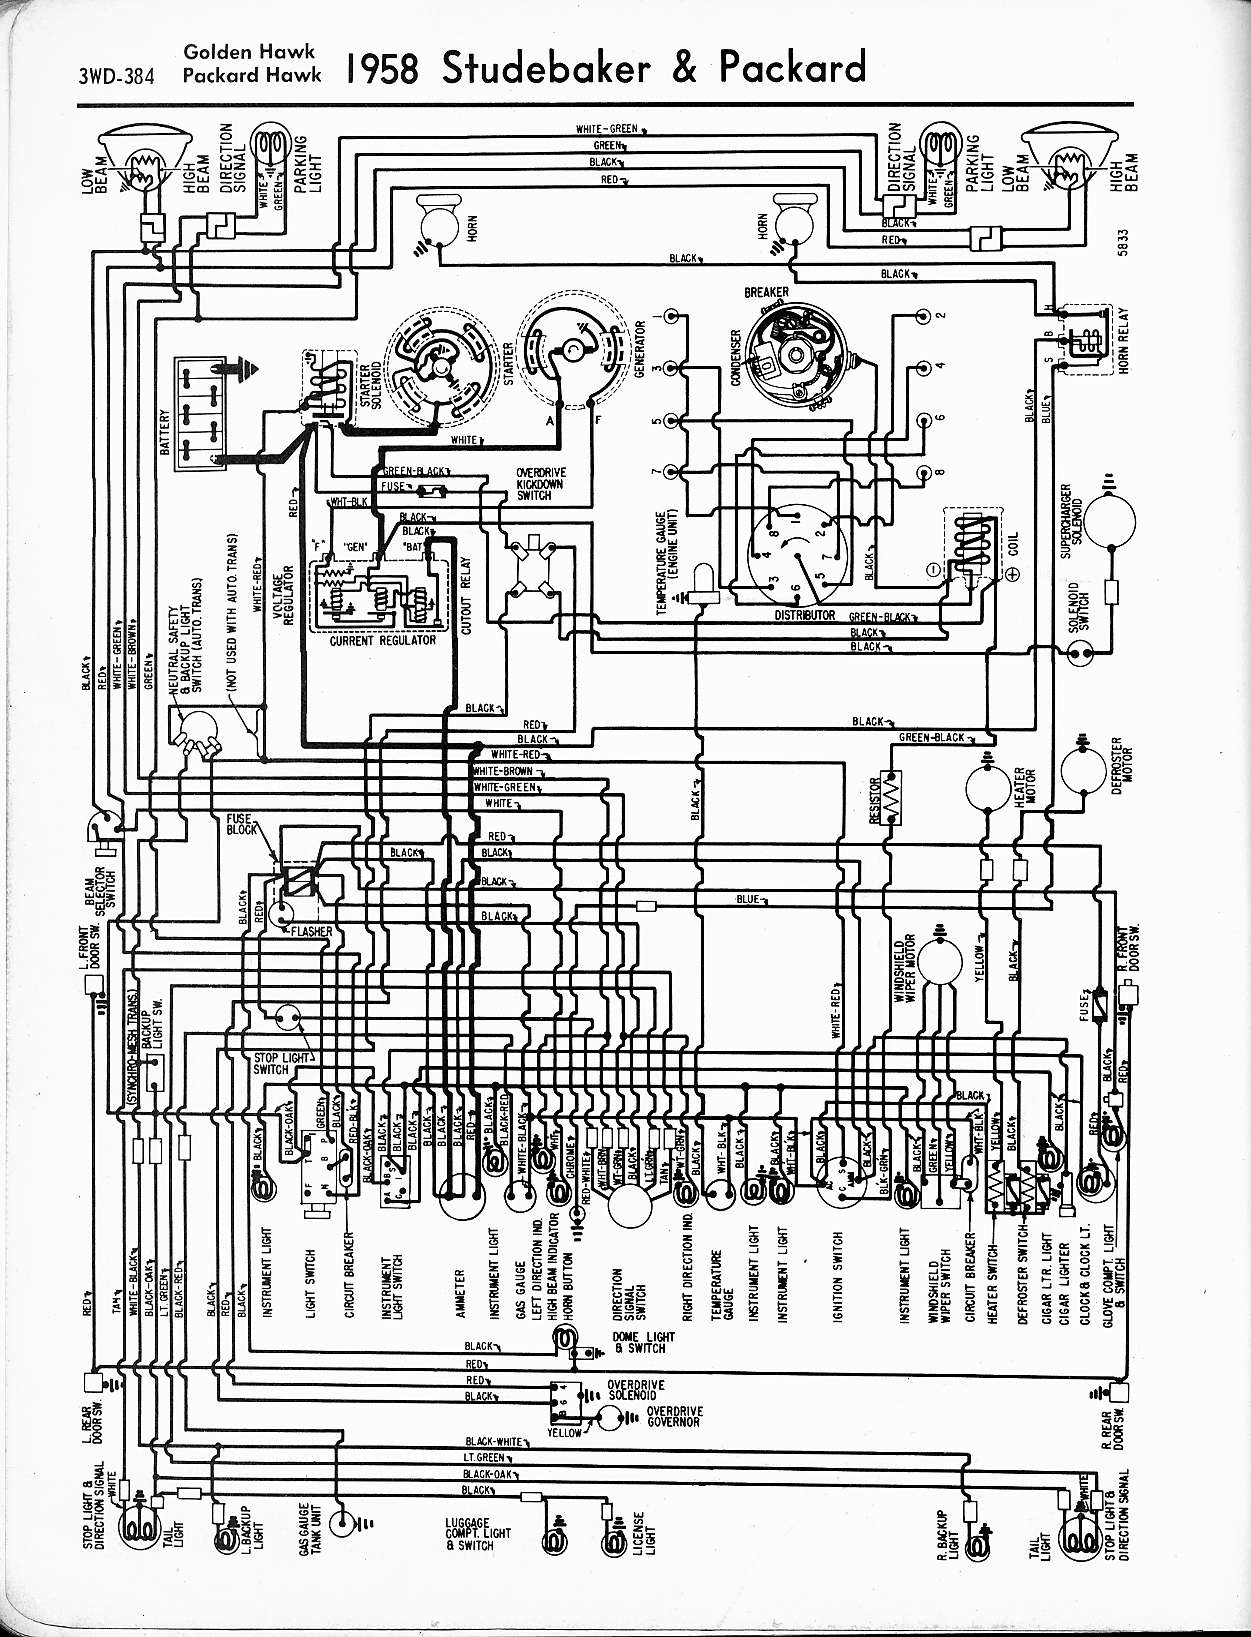 1955 chevy truck headlight switch wiring diagram car radio needs studebaker diagrams - the old manual project